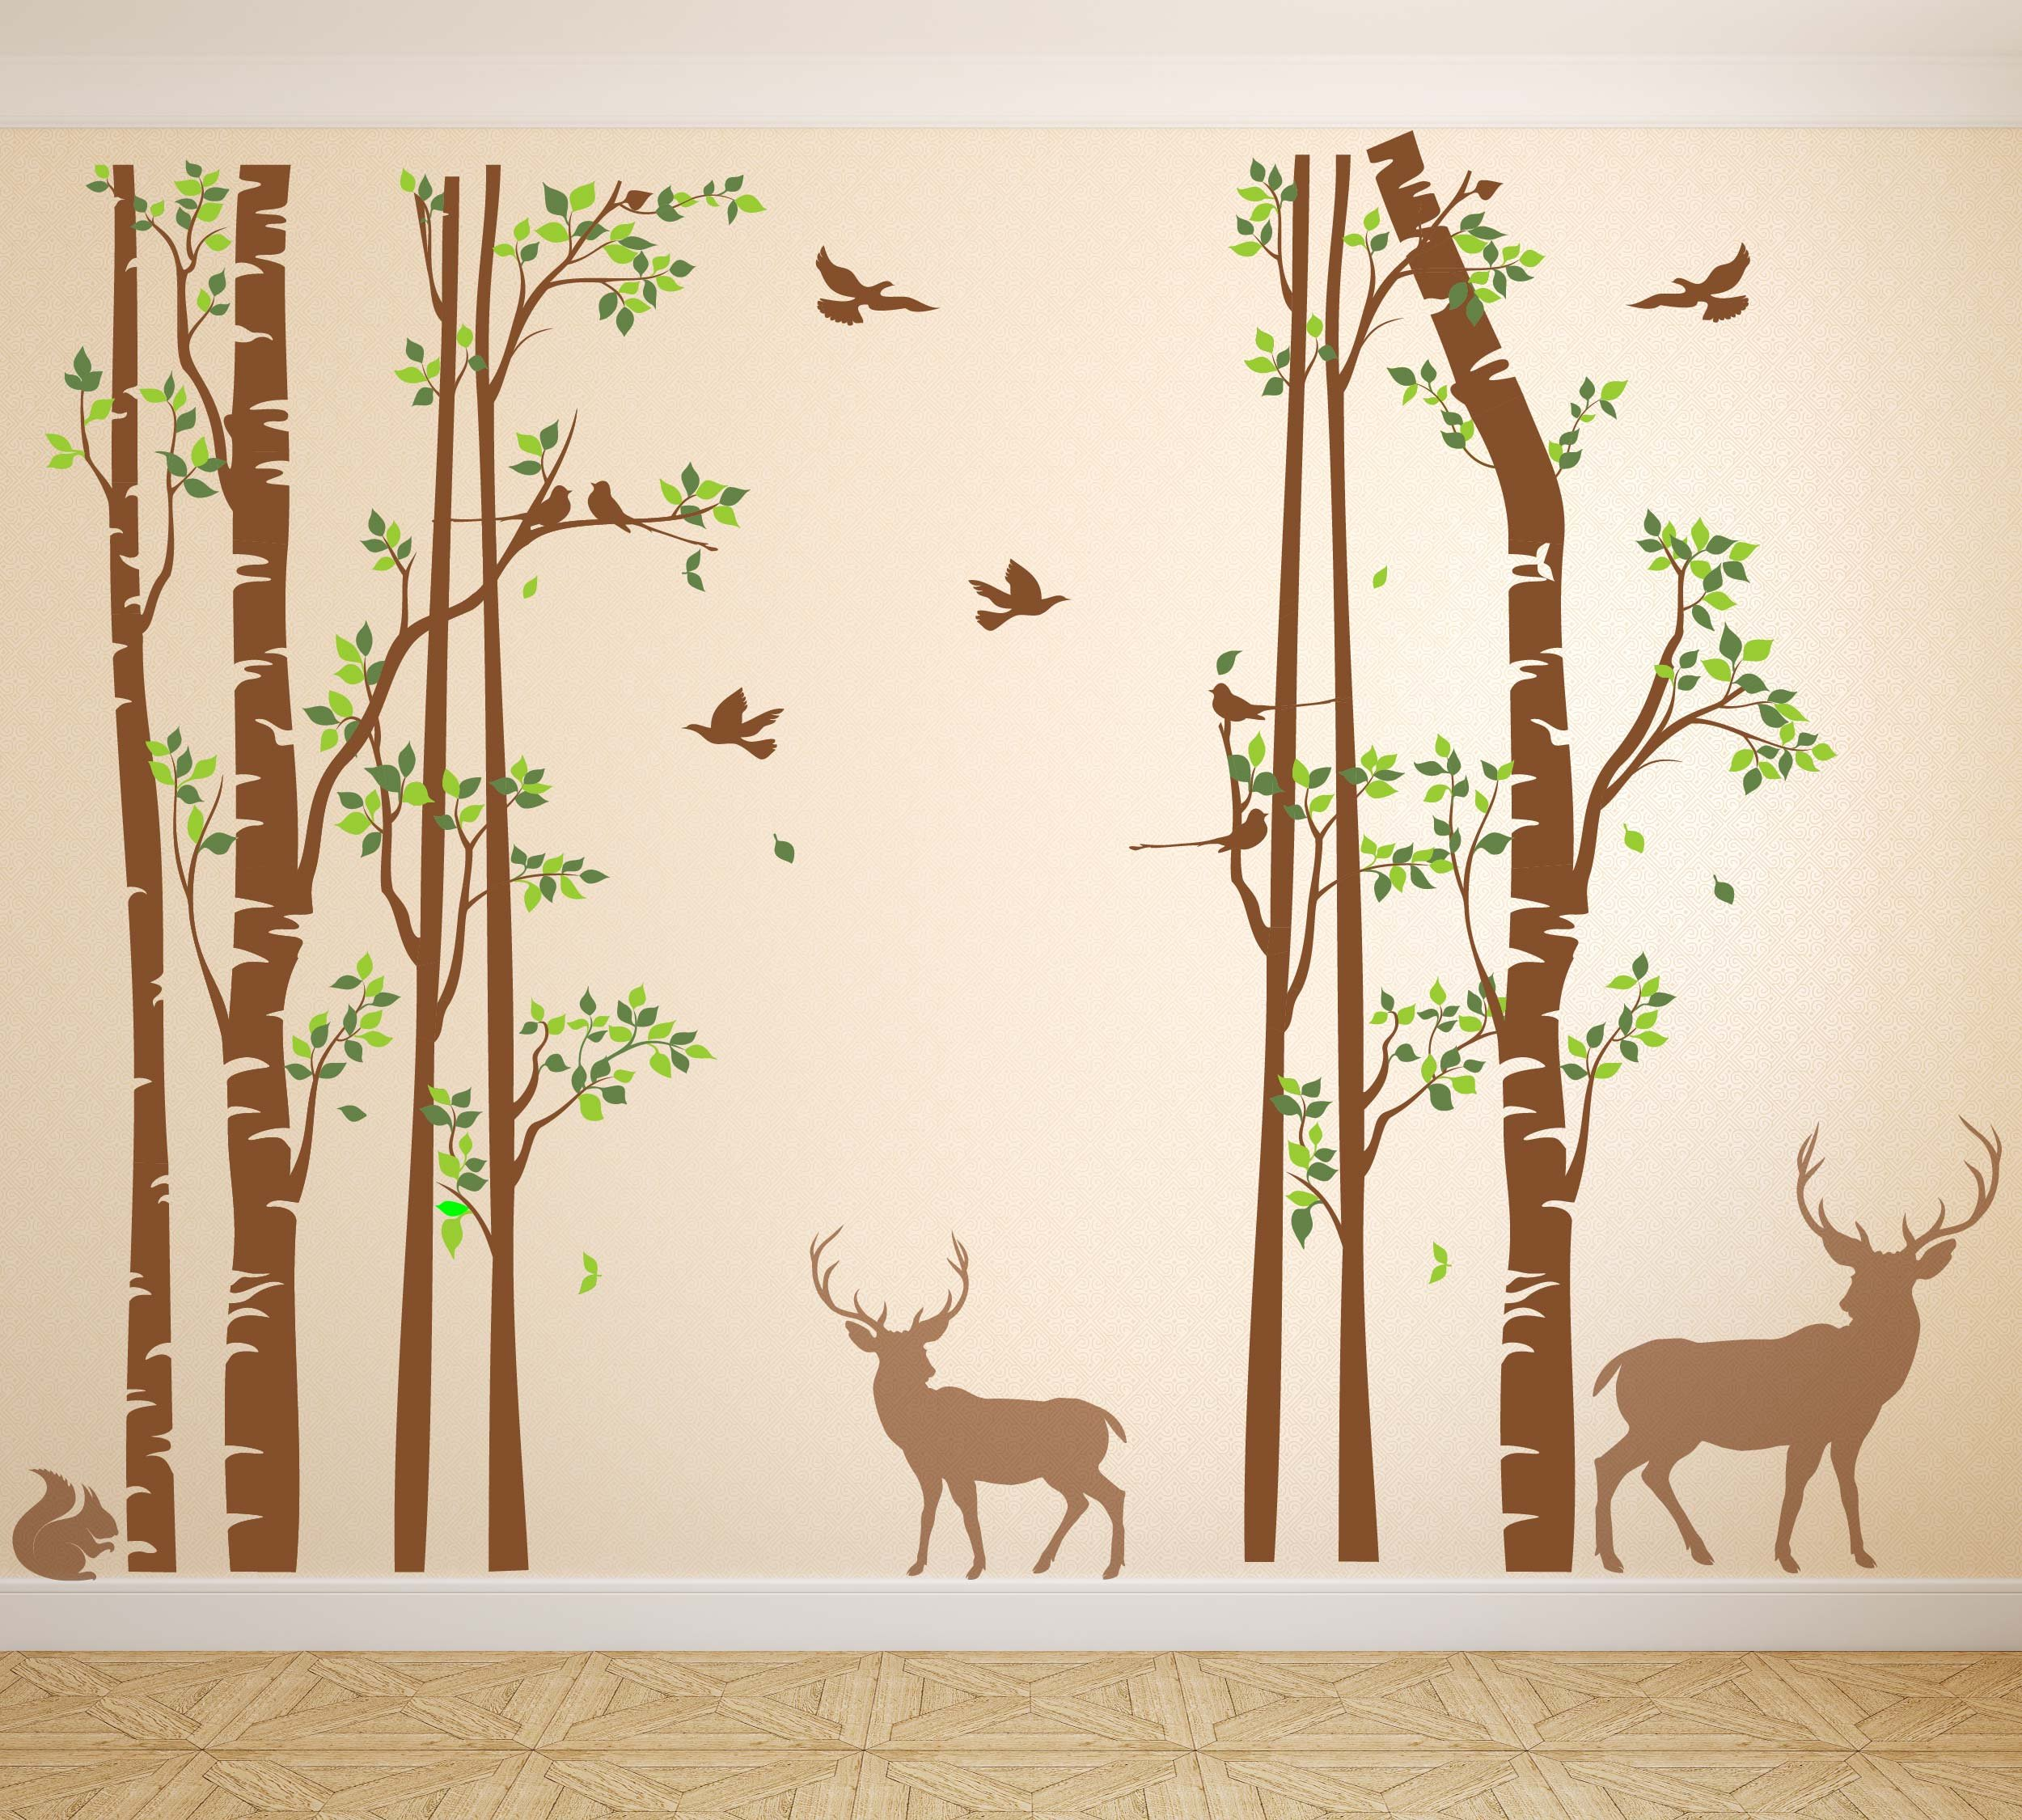 Nursery Birch Tree Wall Decal Forest with Birds and Deer Vinyl Sticker Removable JGD (96'' (8 feet))